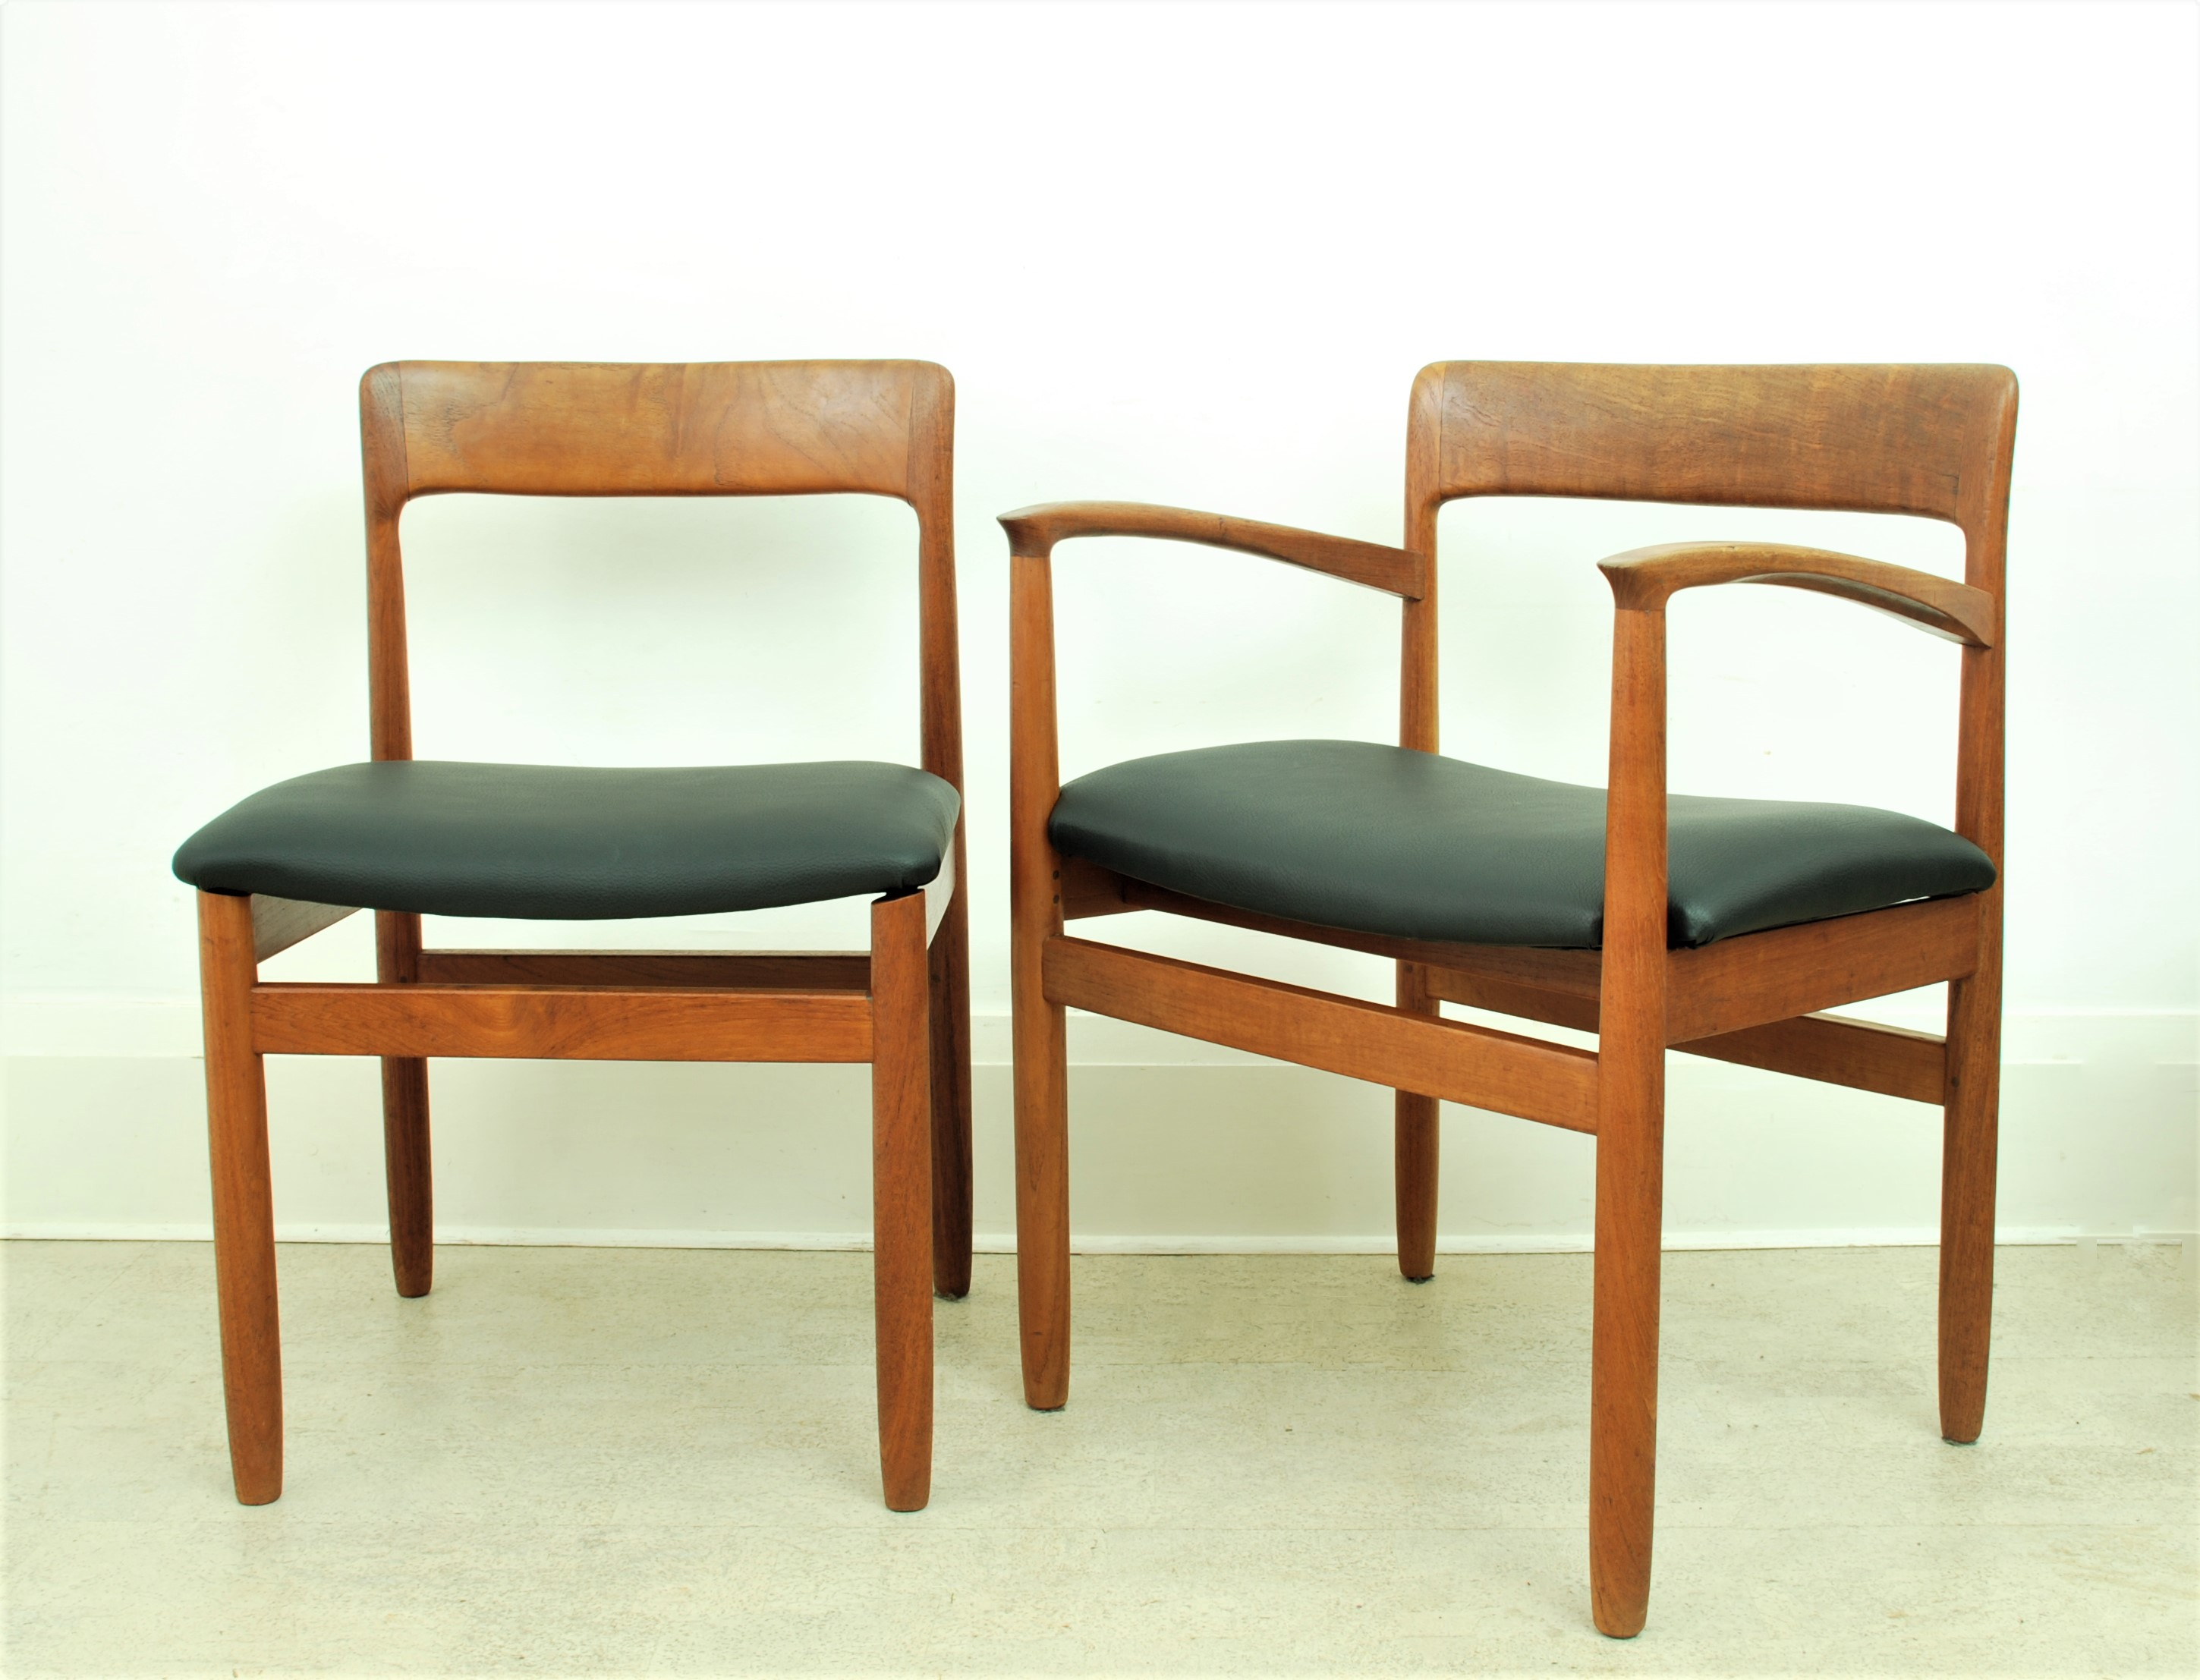 John Herbert for A Younger Dining Chairs